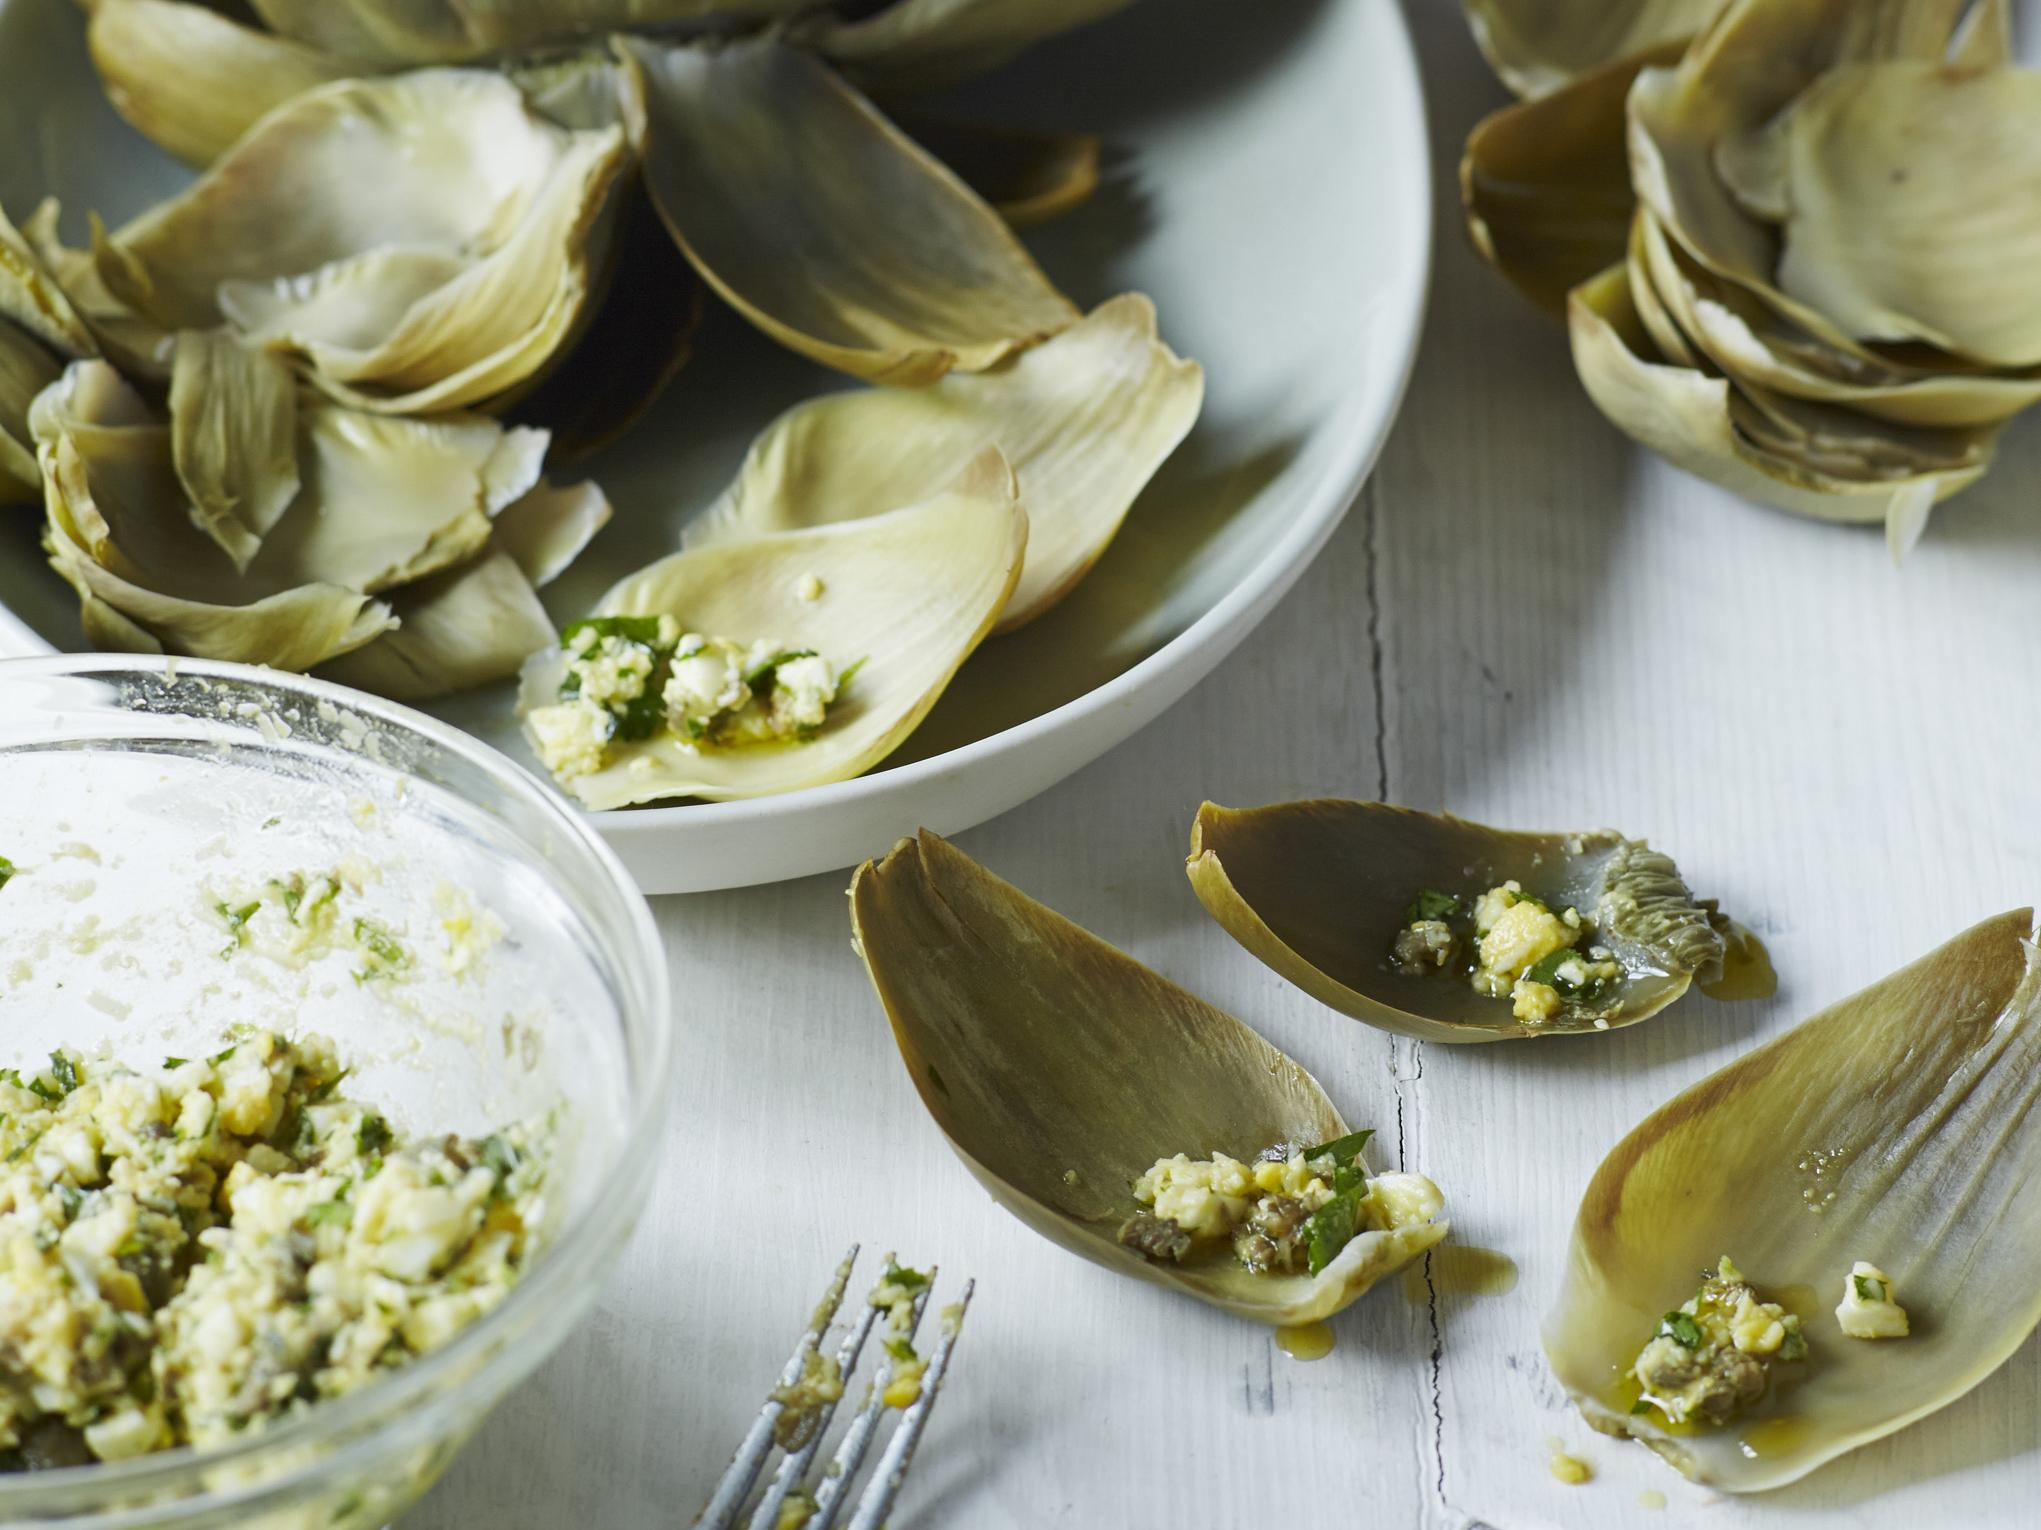 How to make cold stuffed artichokes with eggs, capers and green herbs 1